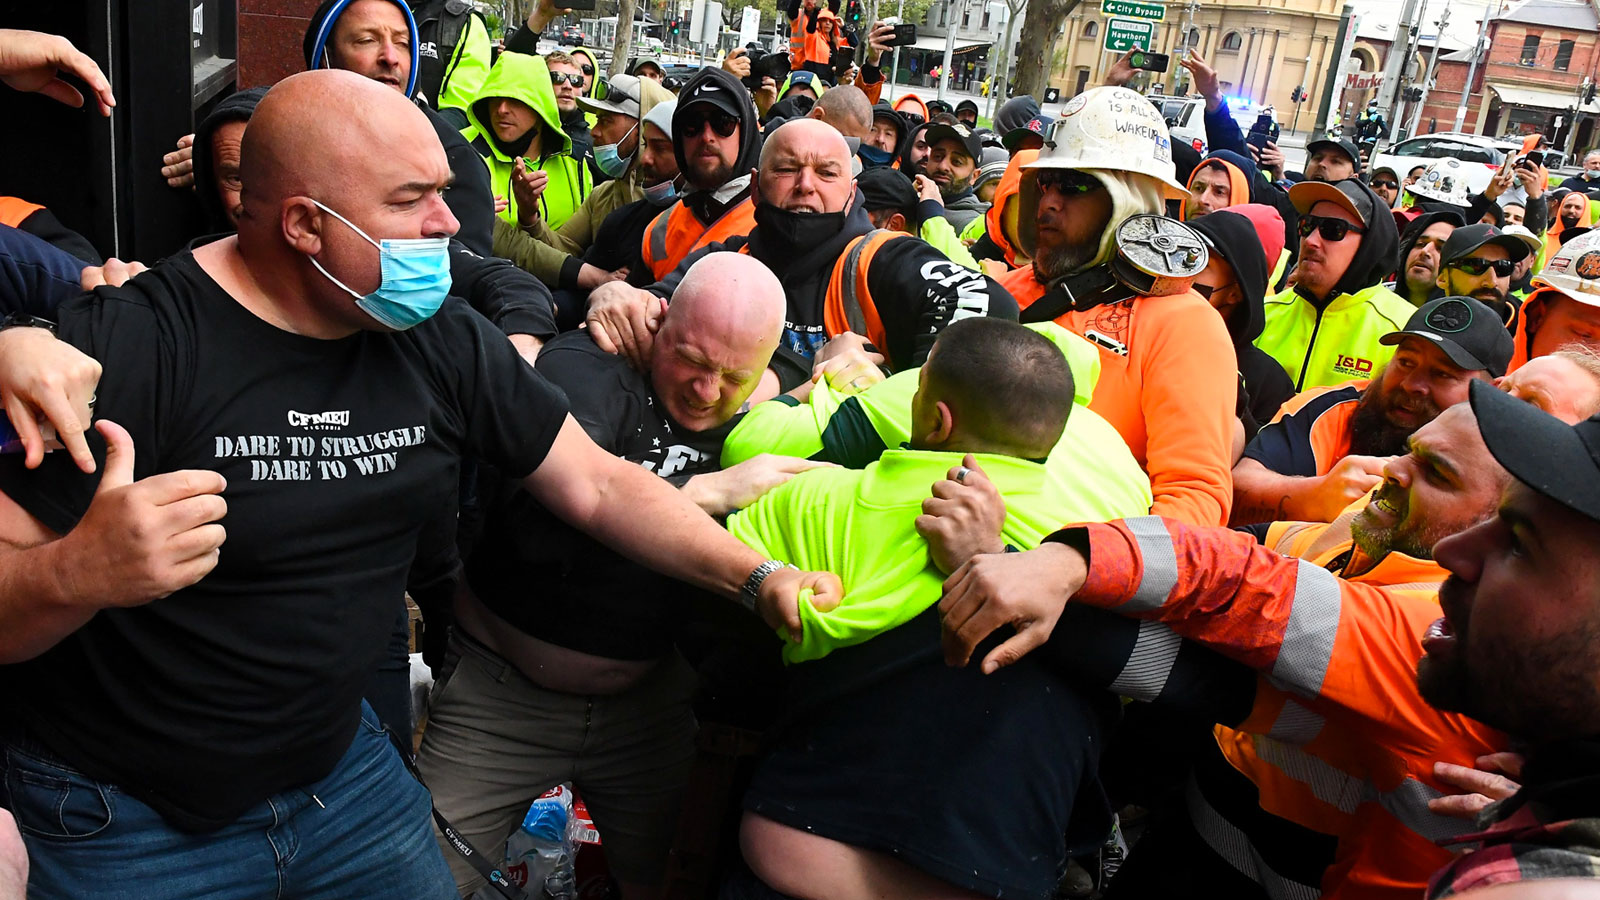 ▲ Construction to shut down in Victoria after violent protests at CFMEU office.